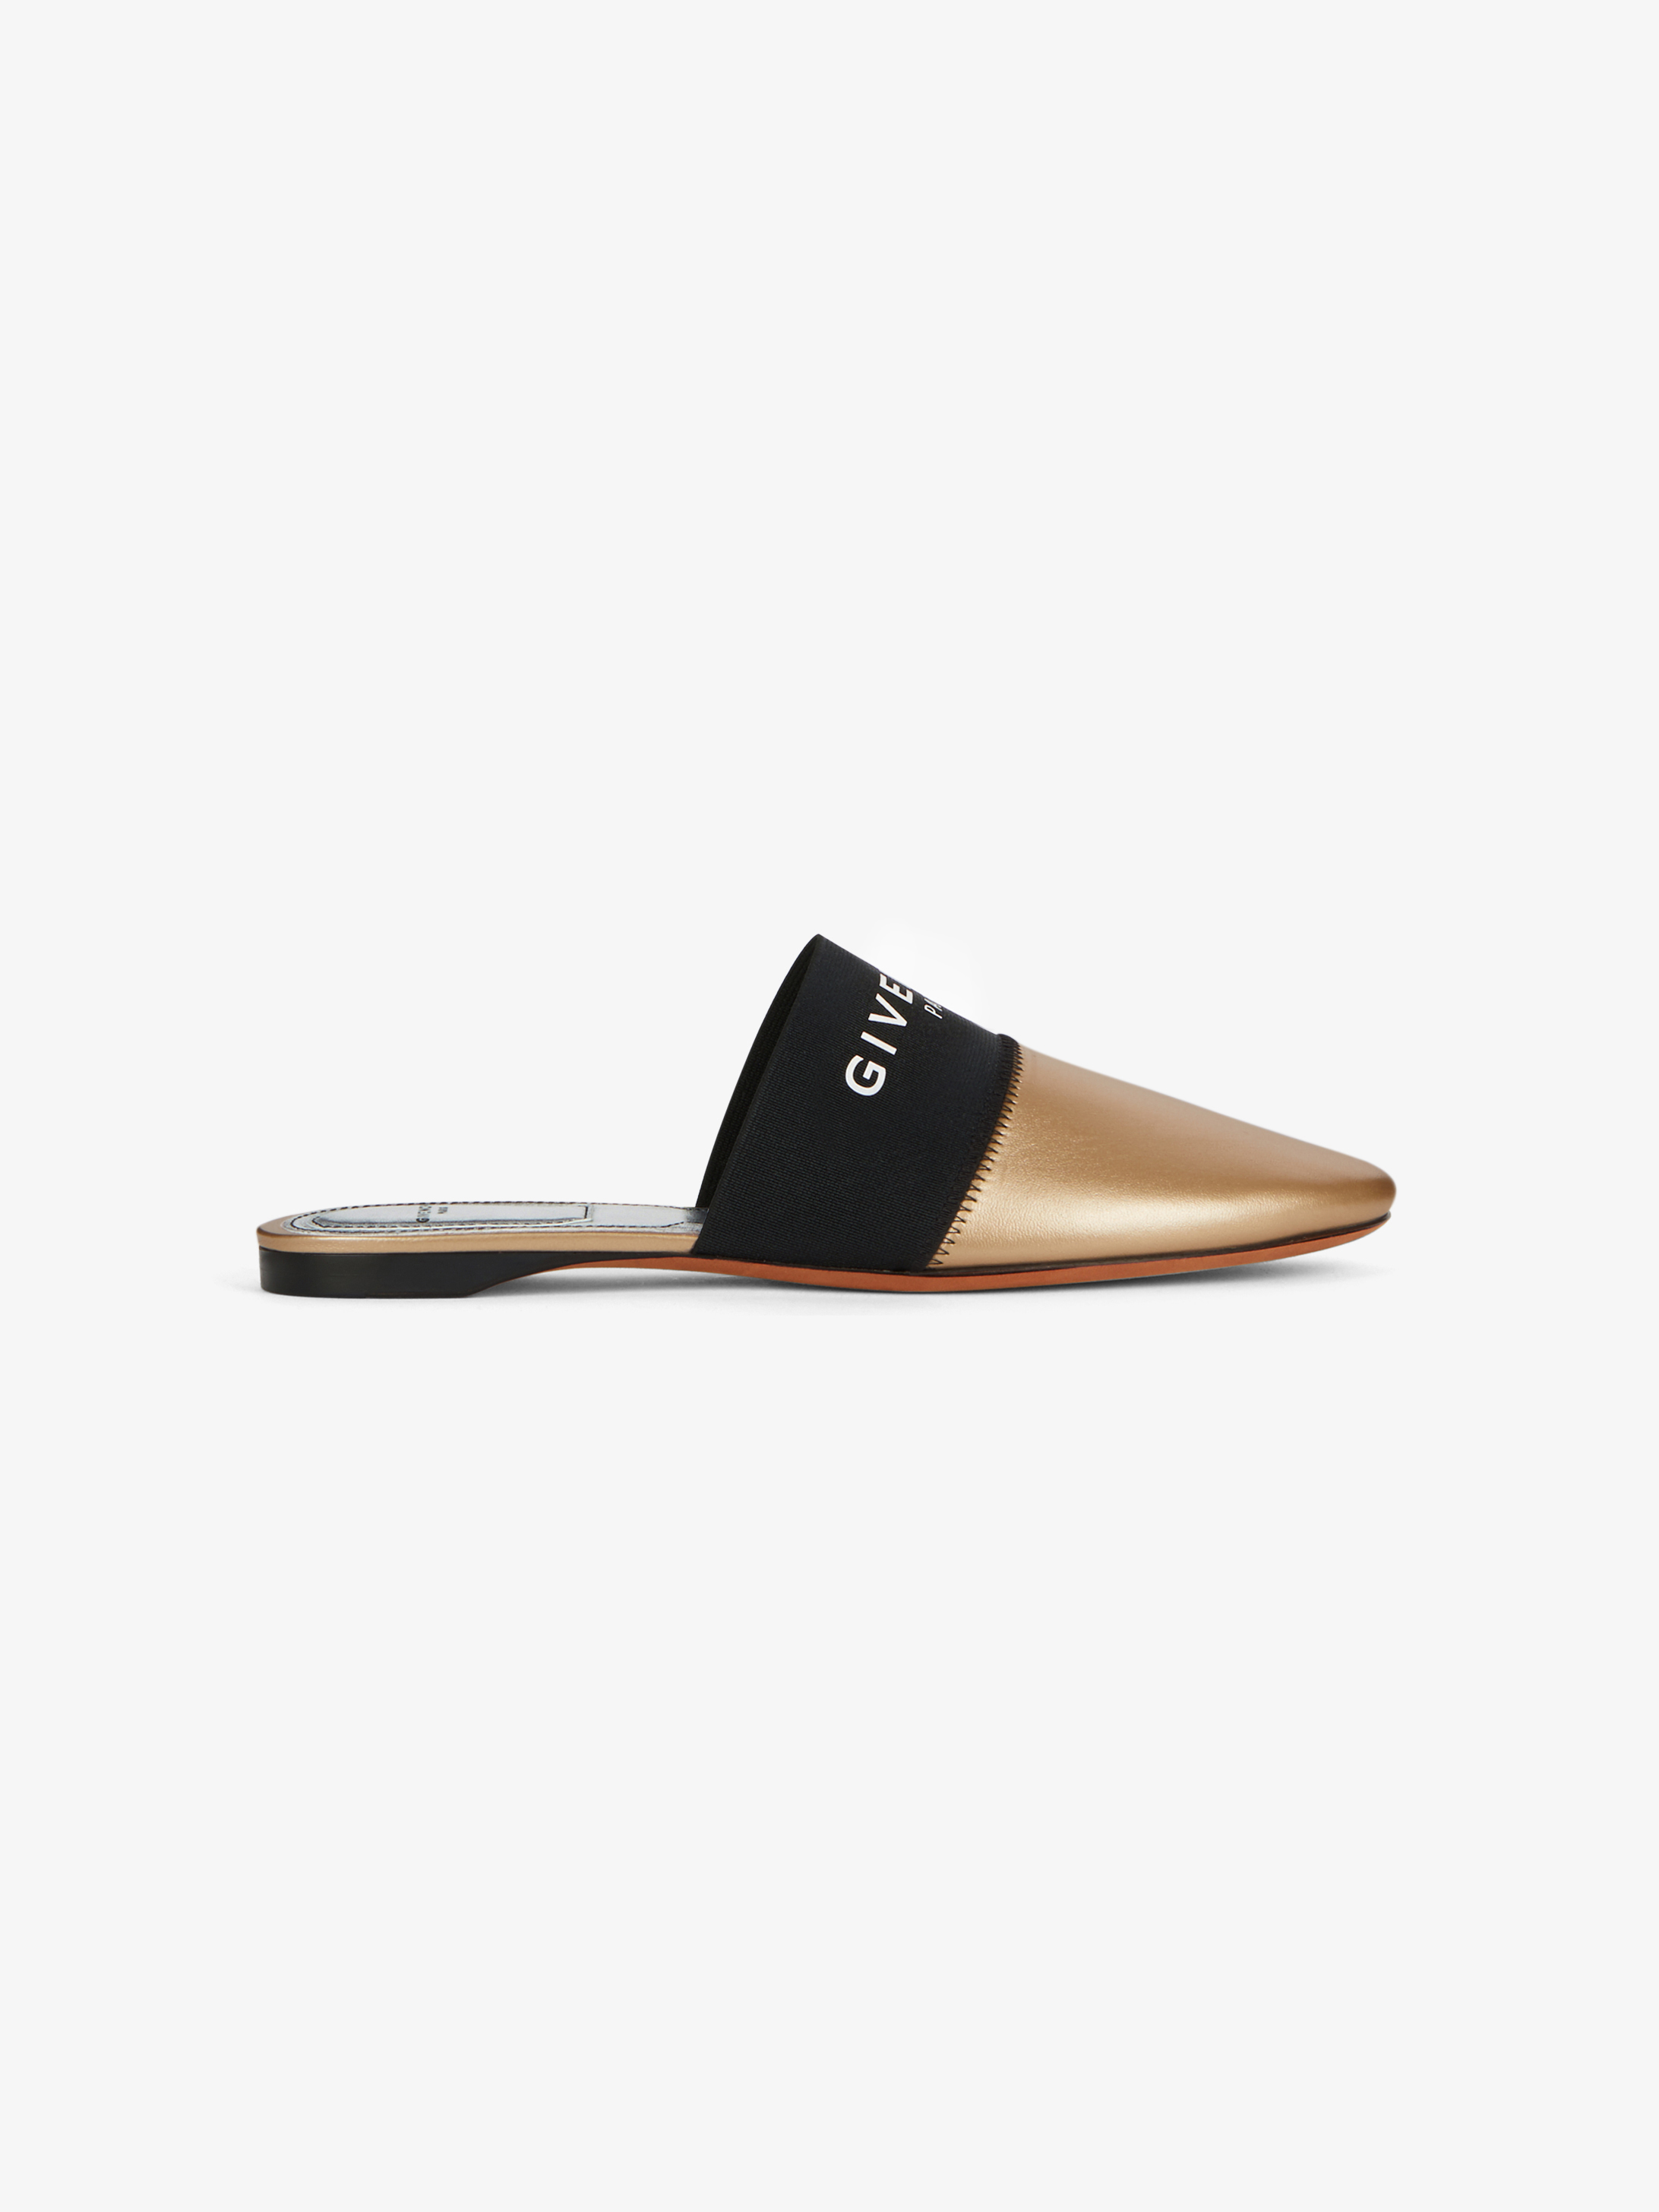 GIVENCHY PARIS flat mules in beaded leather